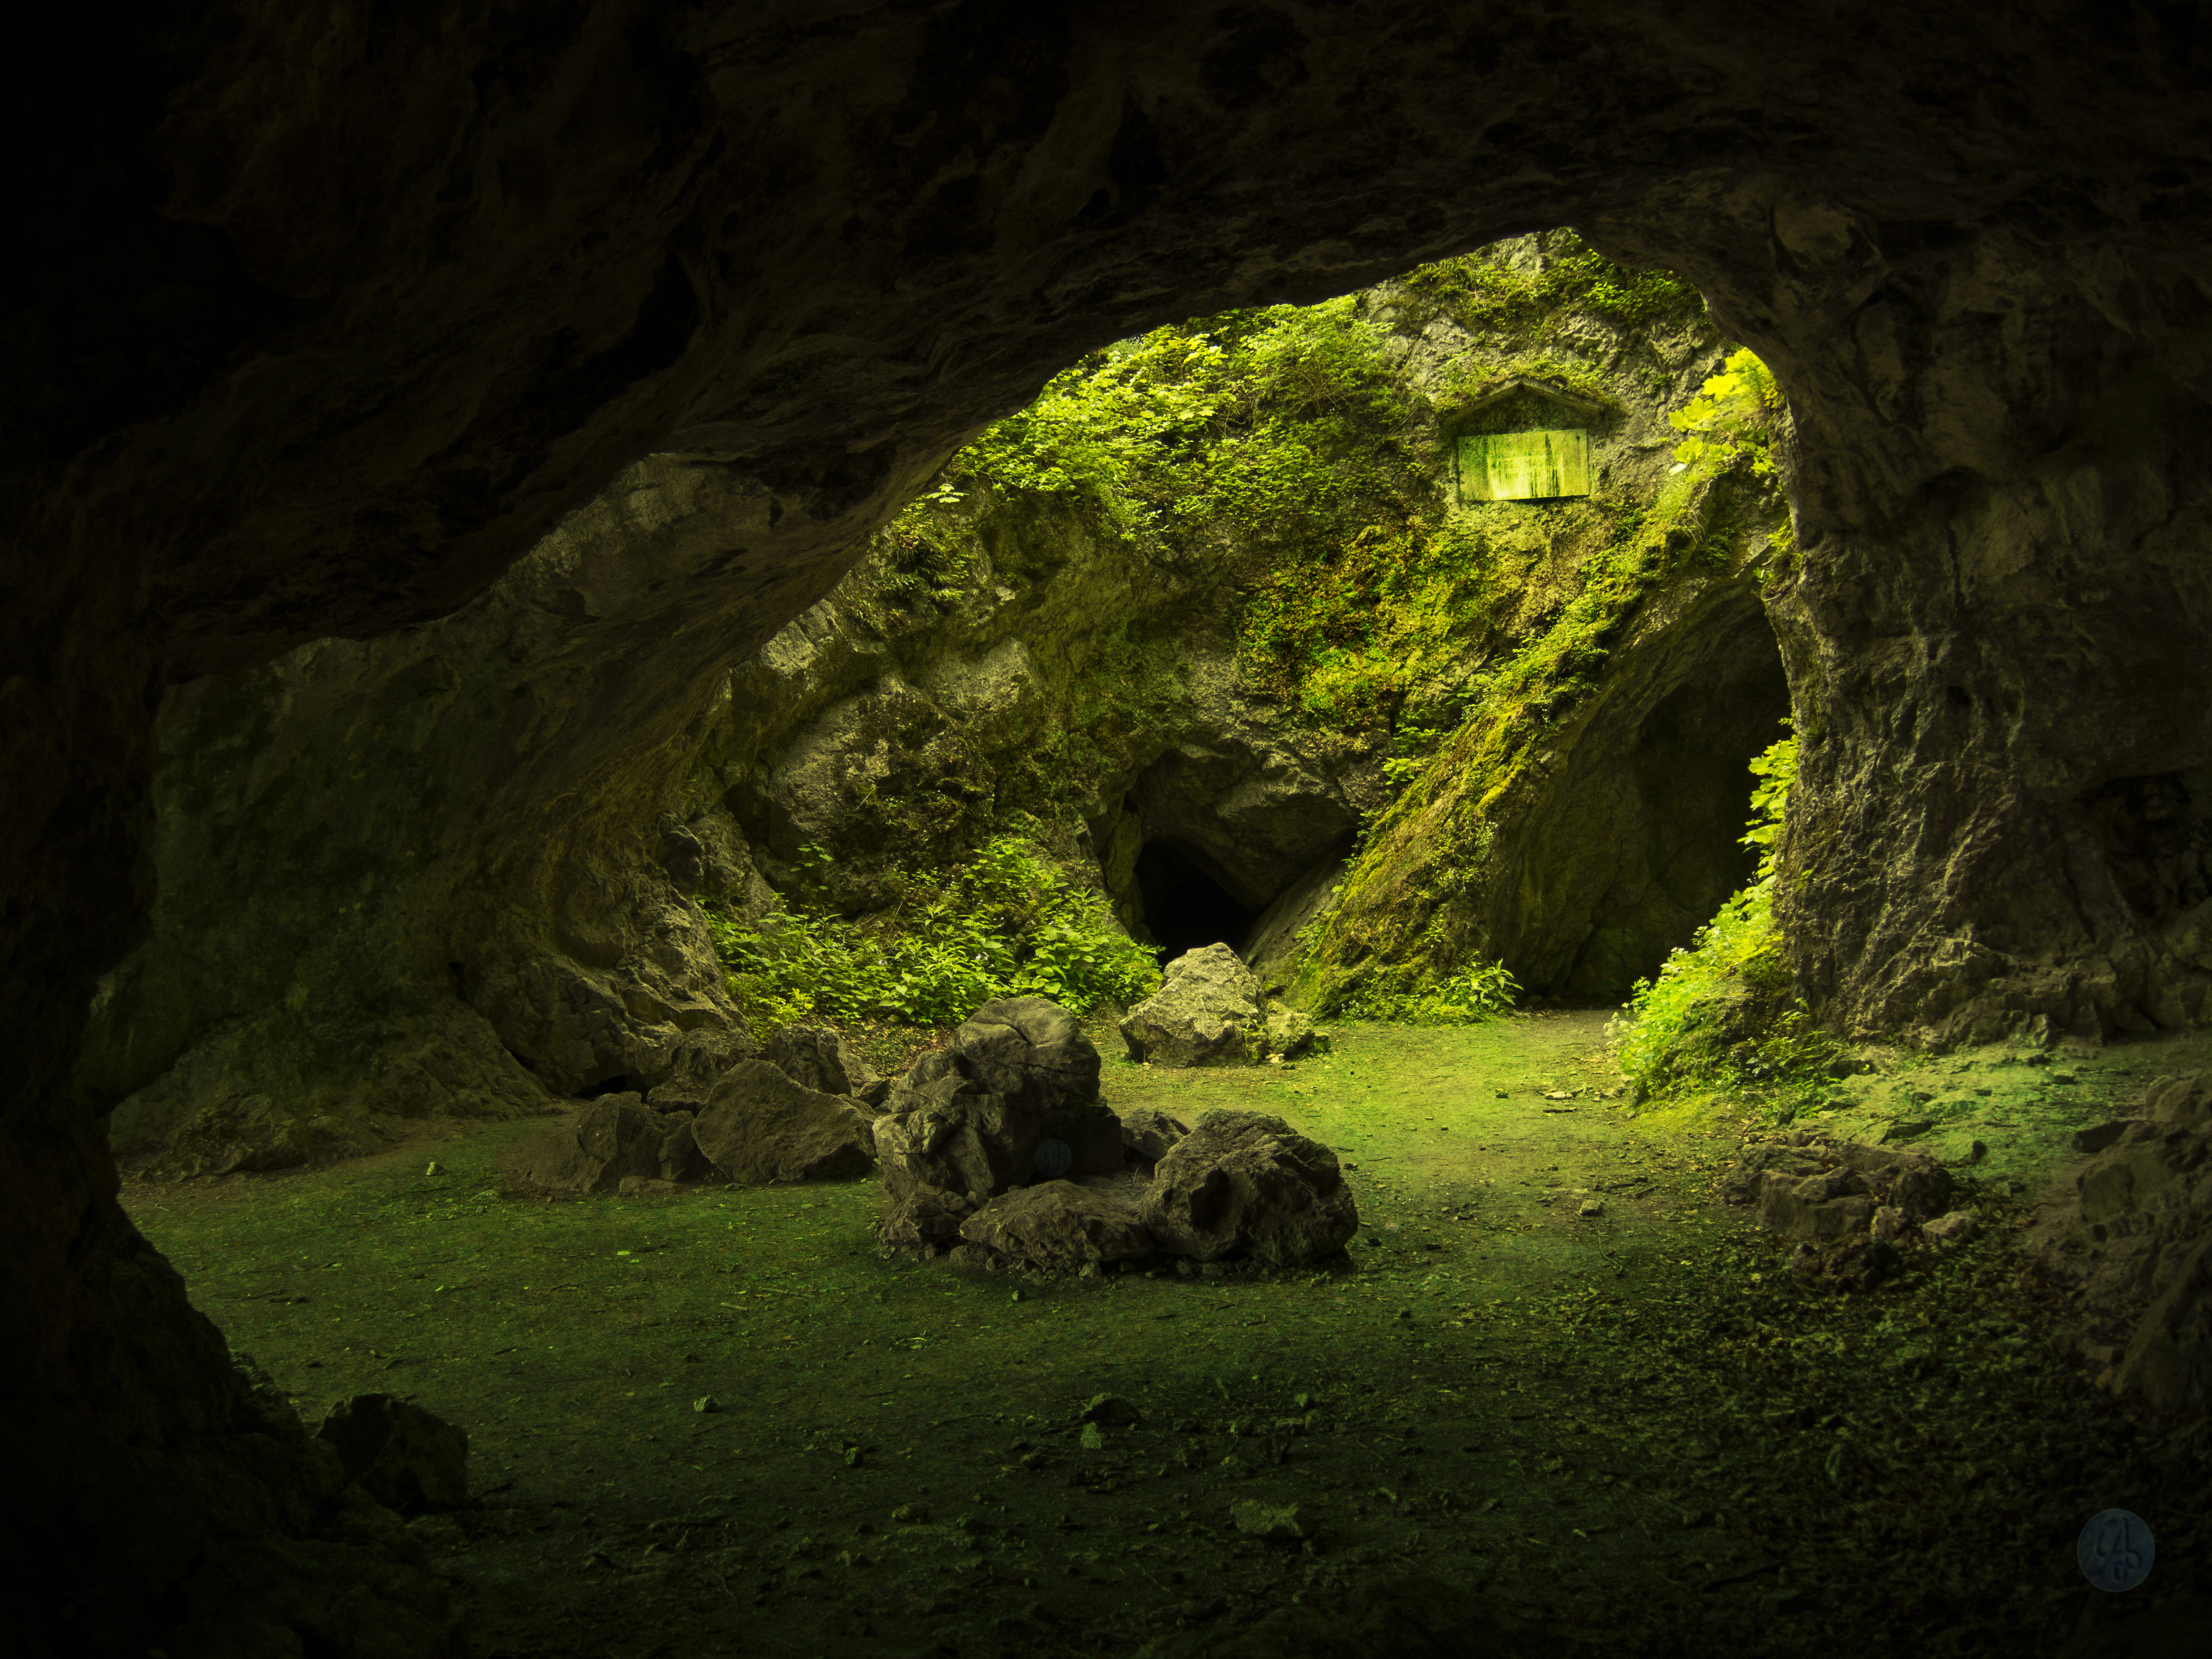 Cave Wallpaper Full Hd Free Download By Aj8 Acro On Deviantart